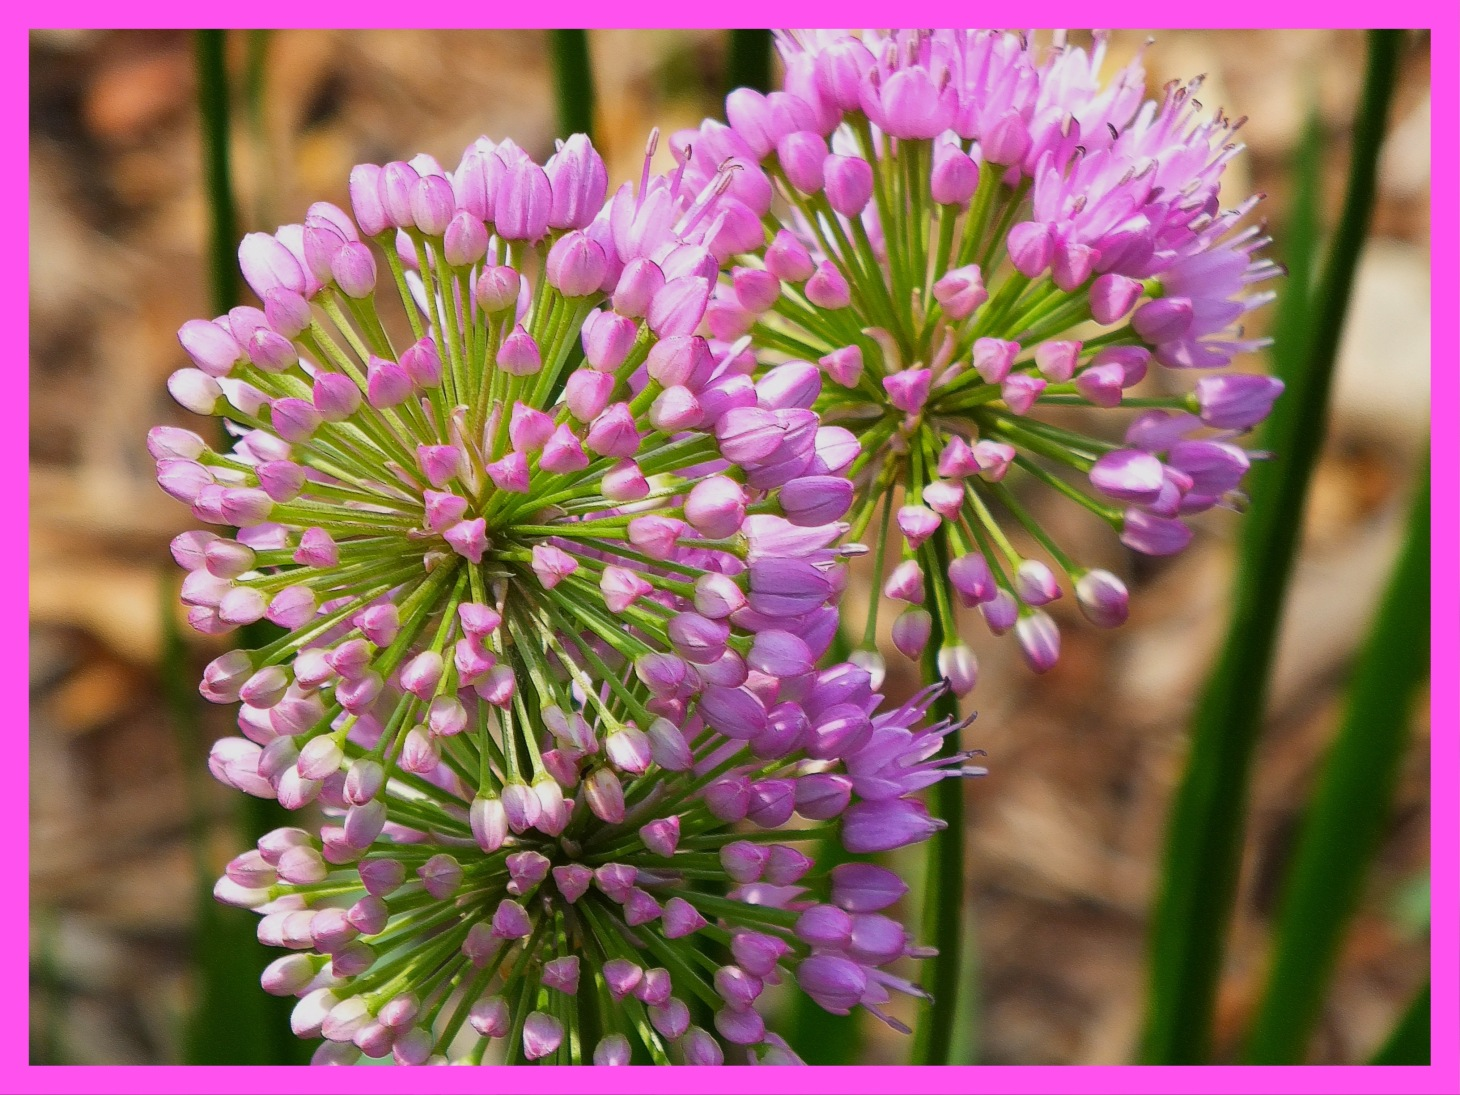 Chives, together as one. (1) Photo by Thomas Peace c. 2015